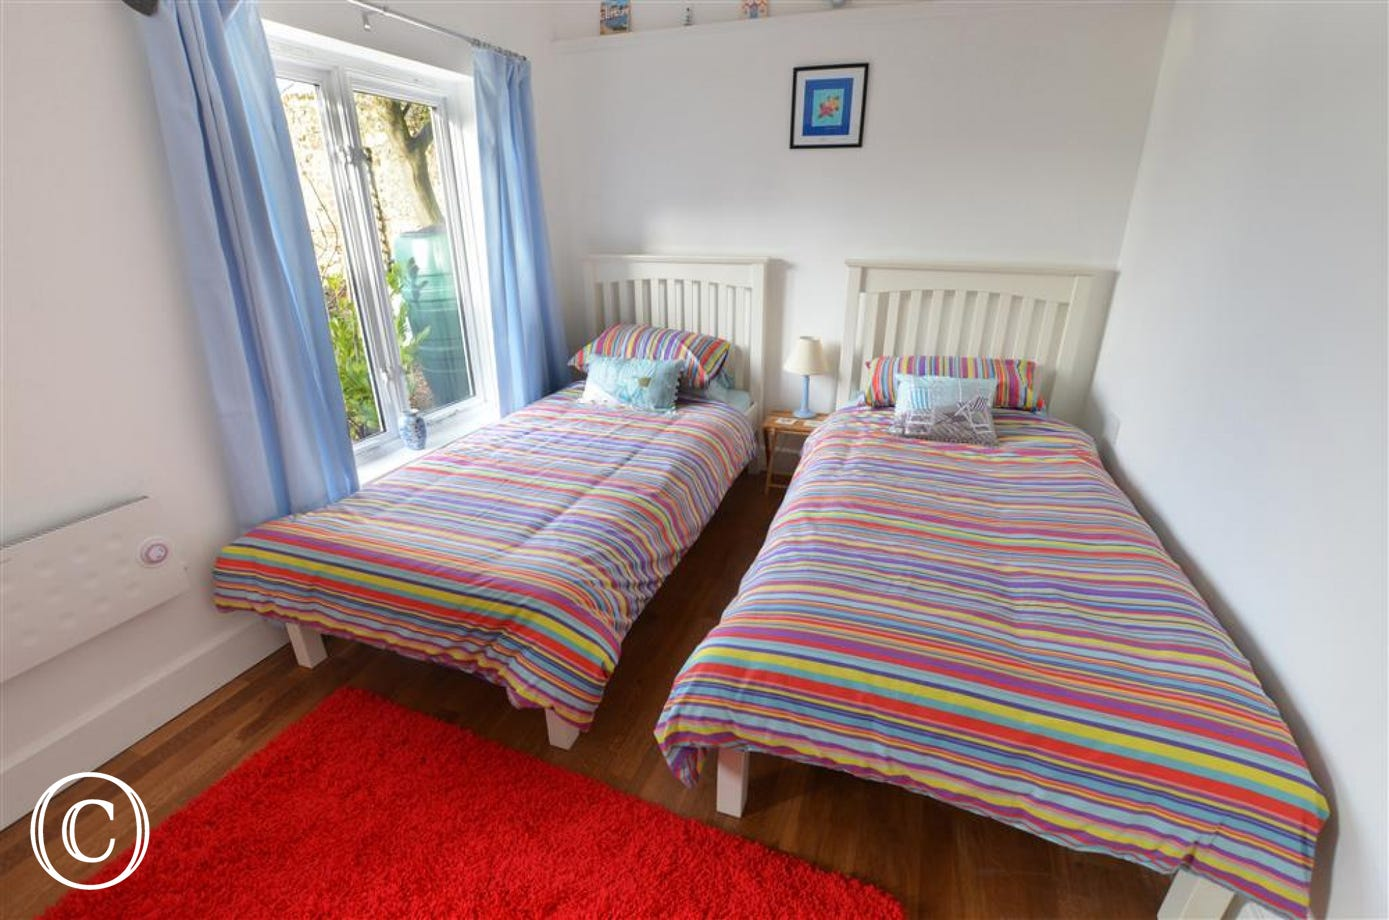 Twin bedded room with beds side by side.